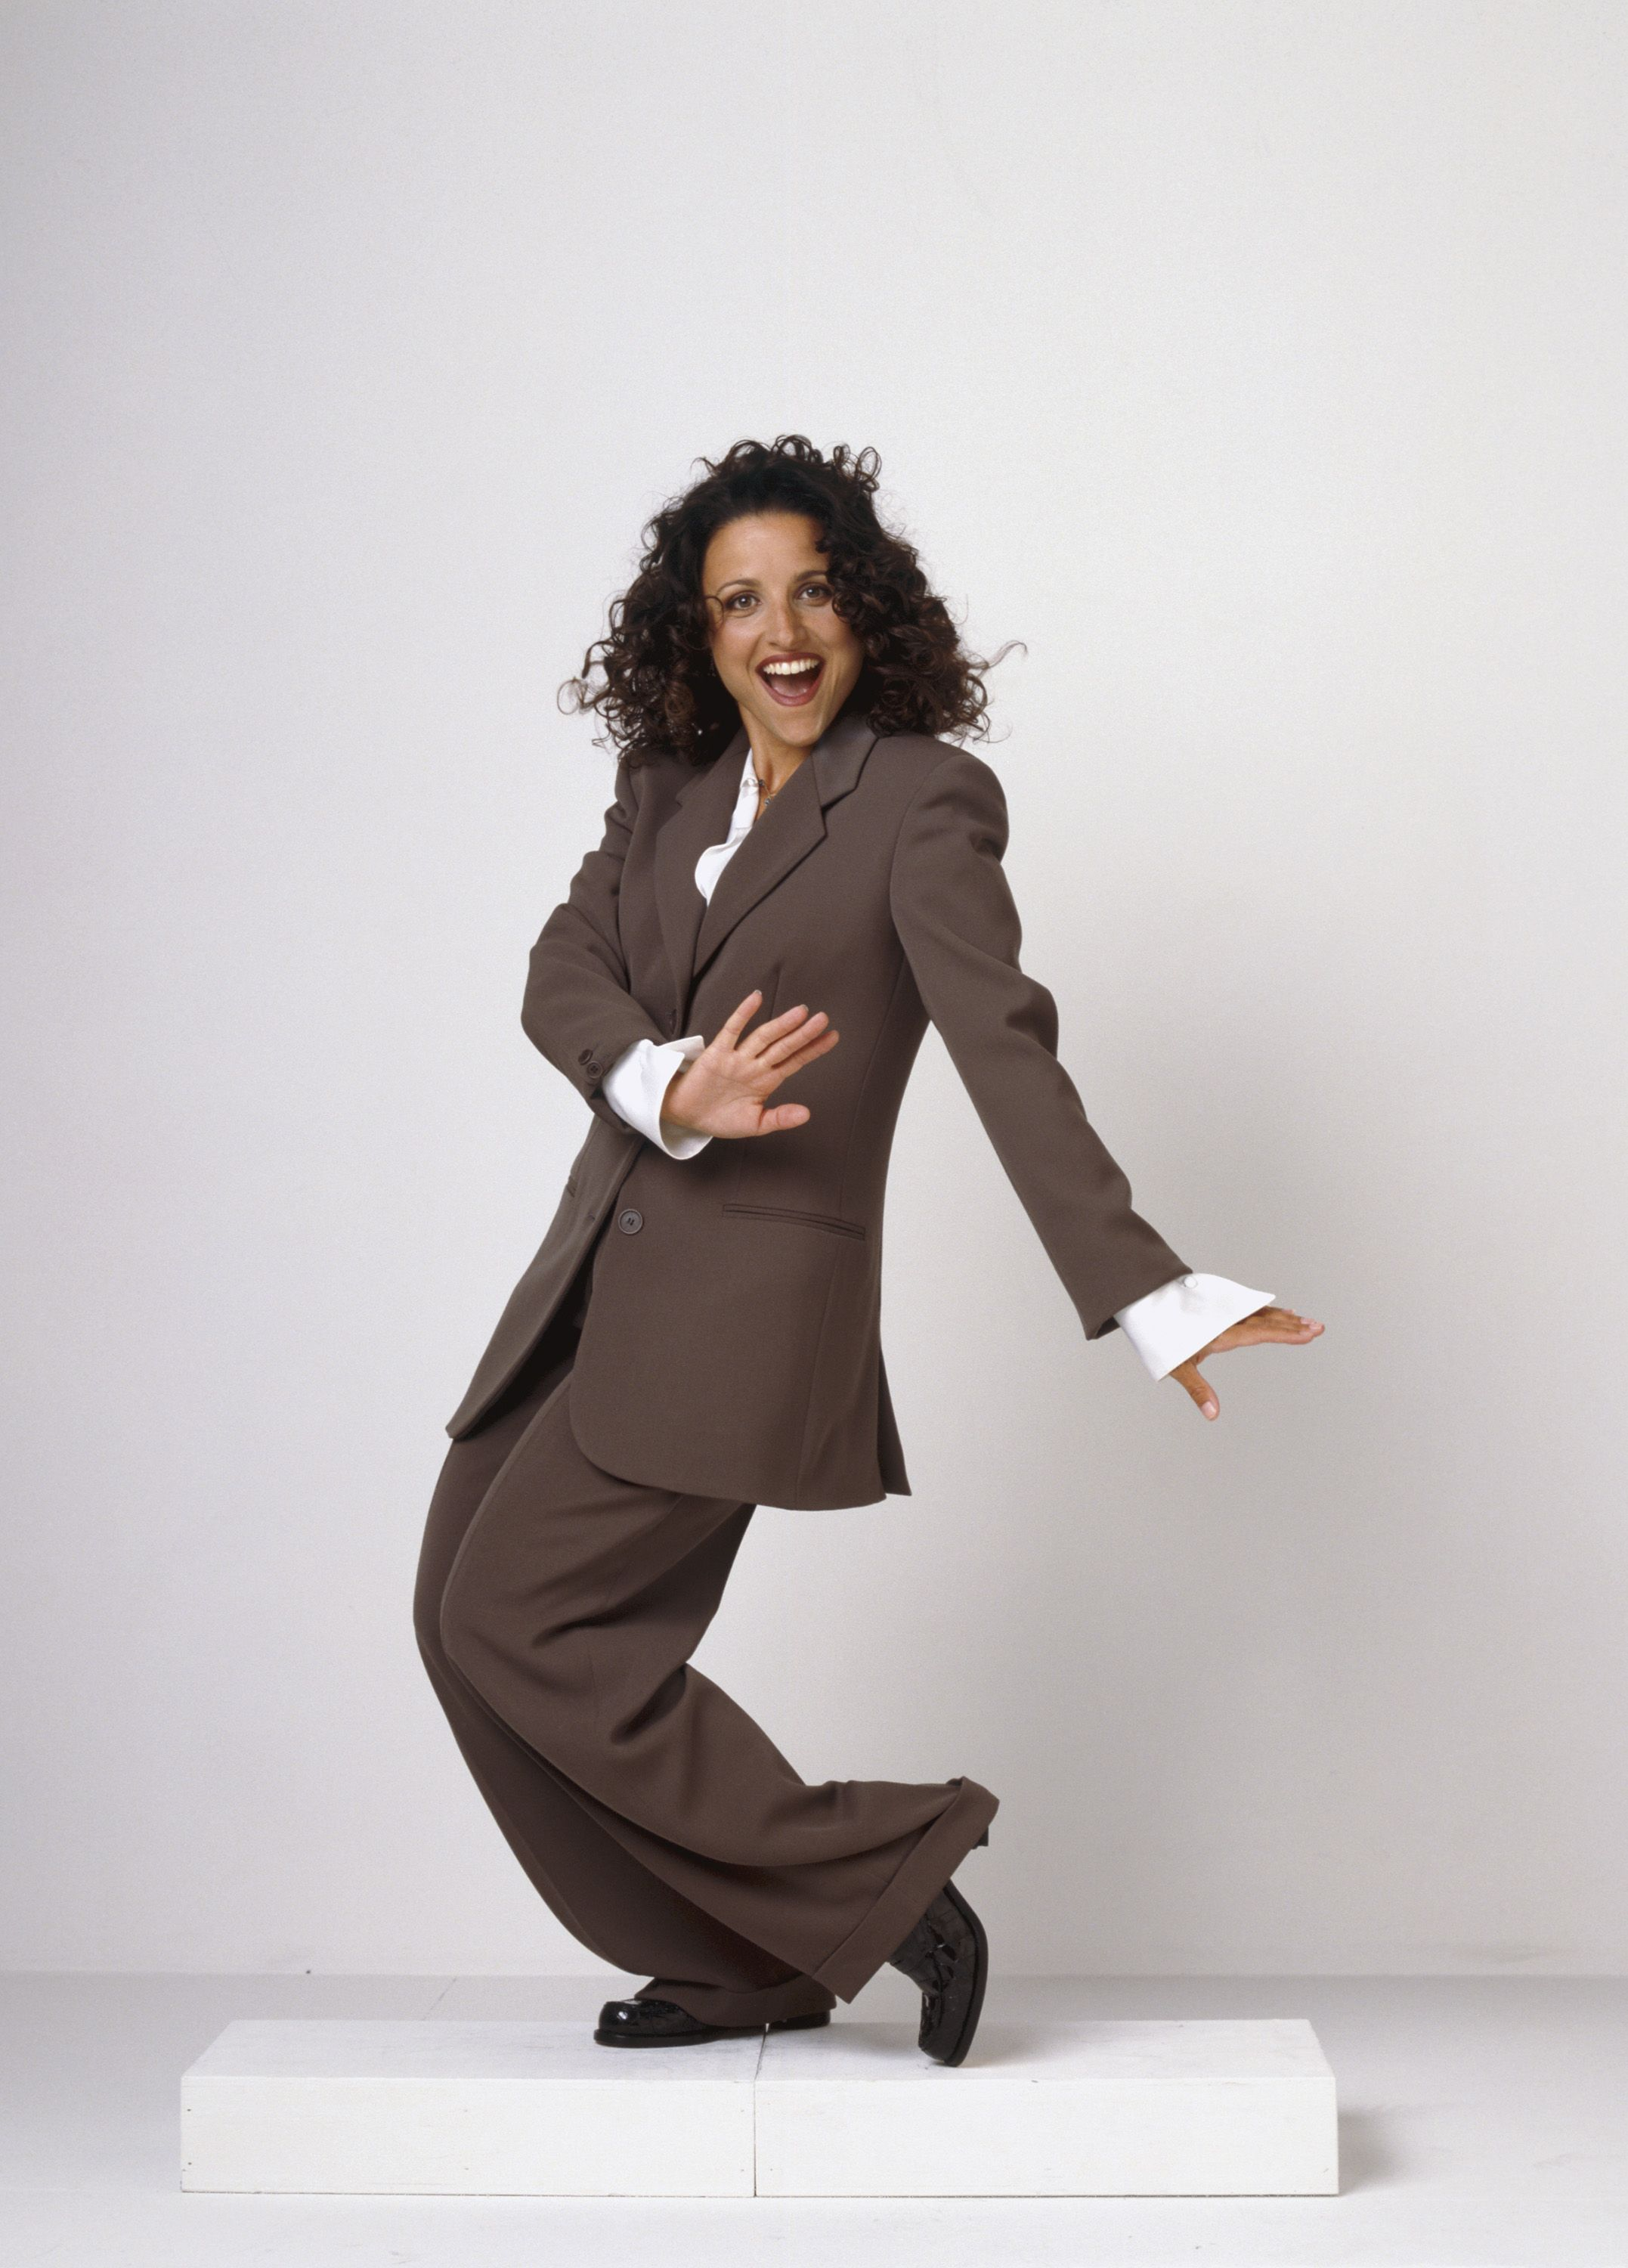 The Fashion Influence of Elaine from Seinfeld